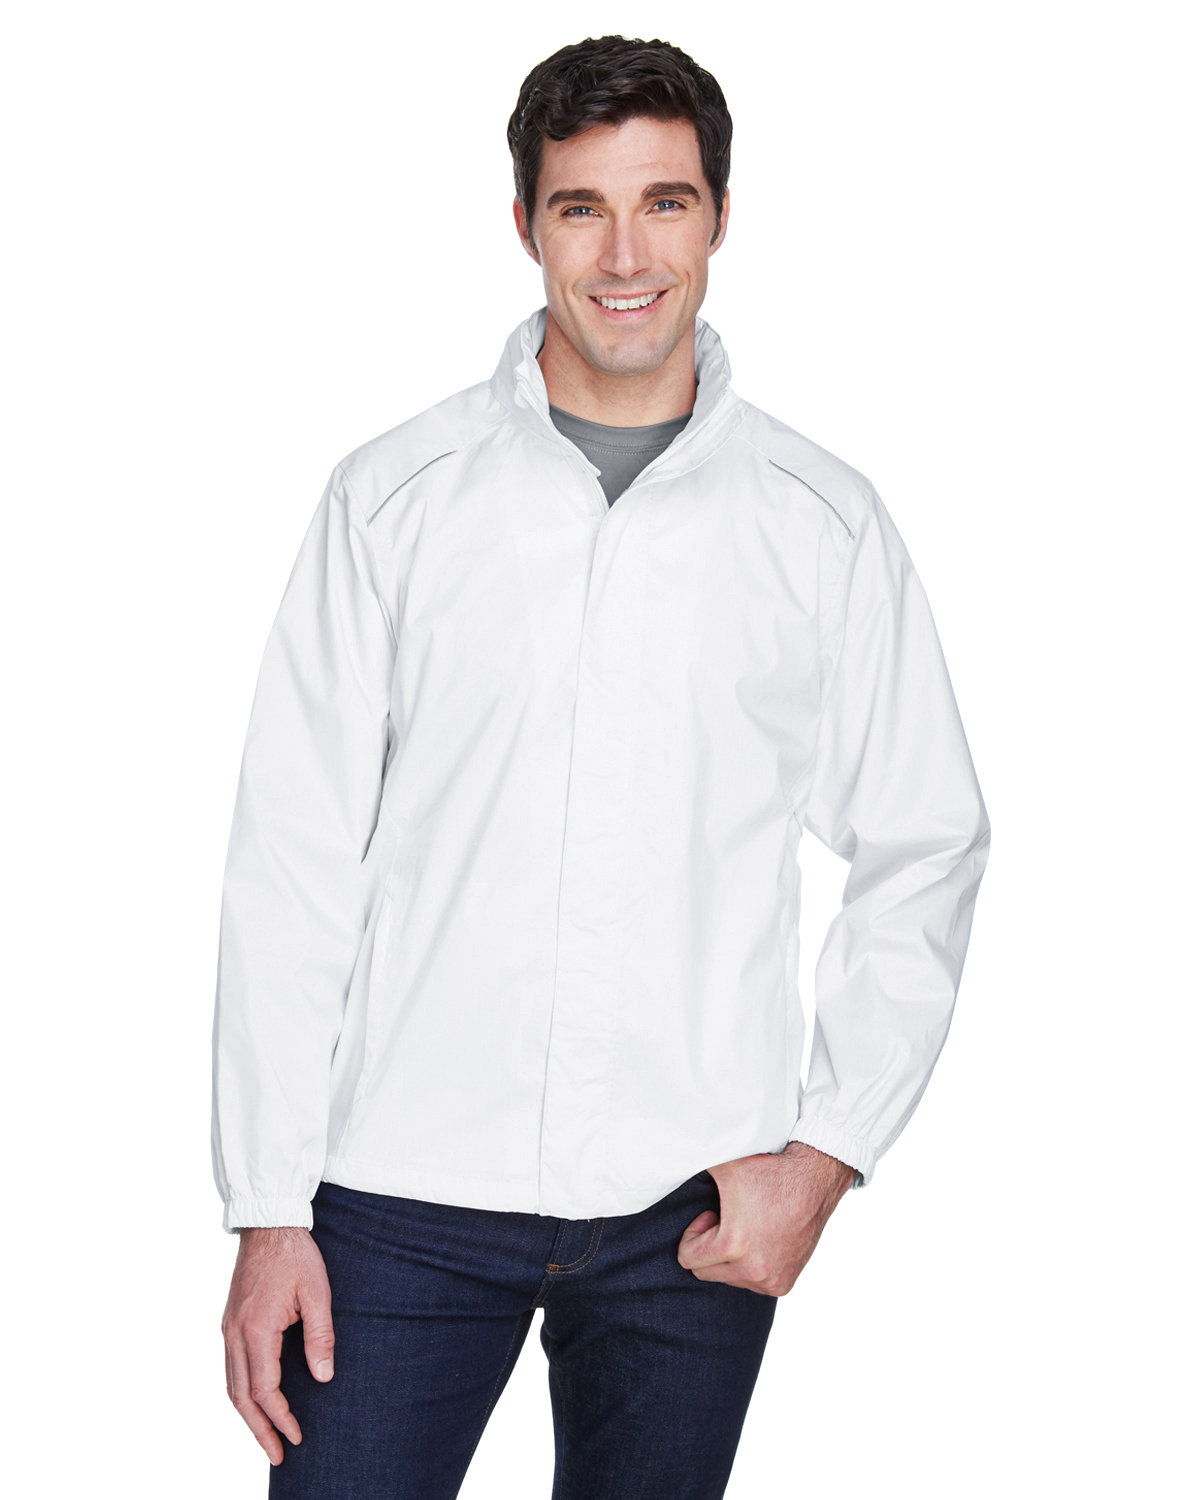 Core 365 Men's Climate Seam-Sealed Lightweight Variegated Ripstop Jacket WHITE